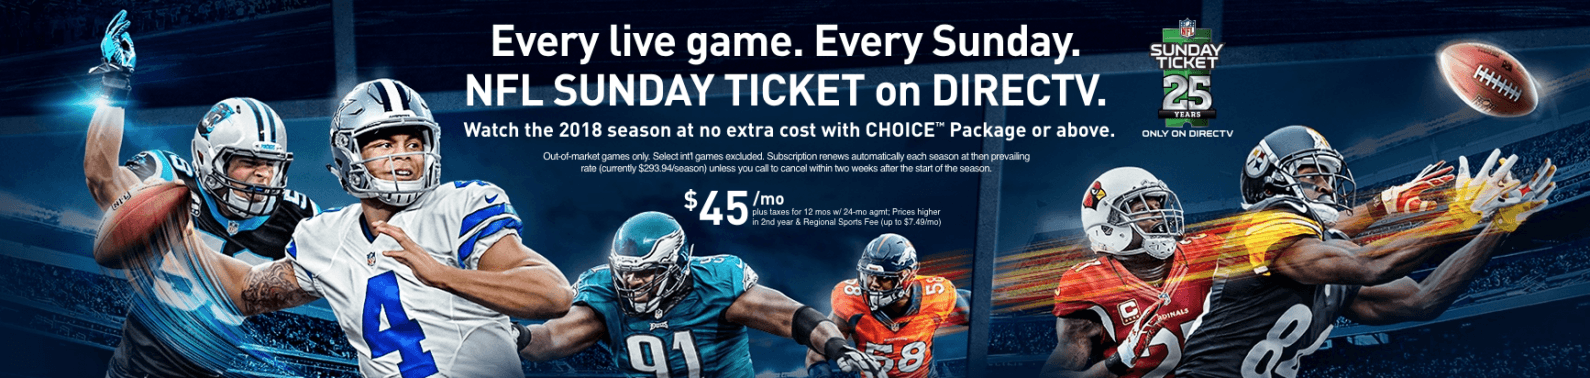 sunday ticket nfl live stream on directv